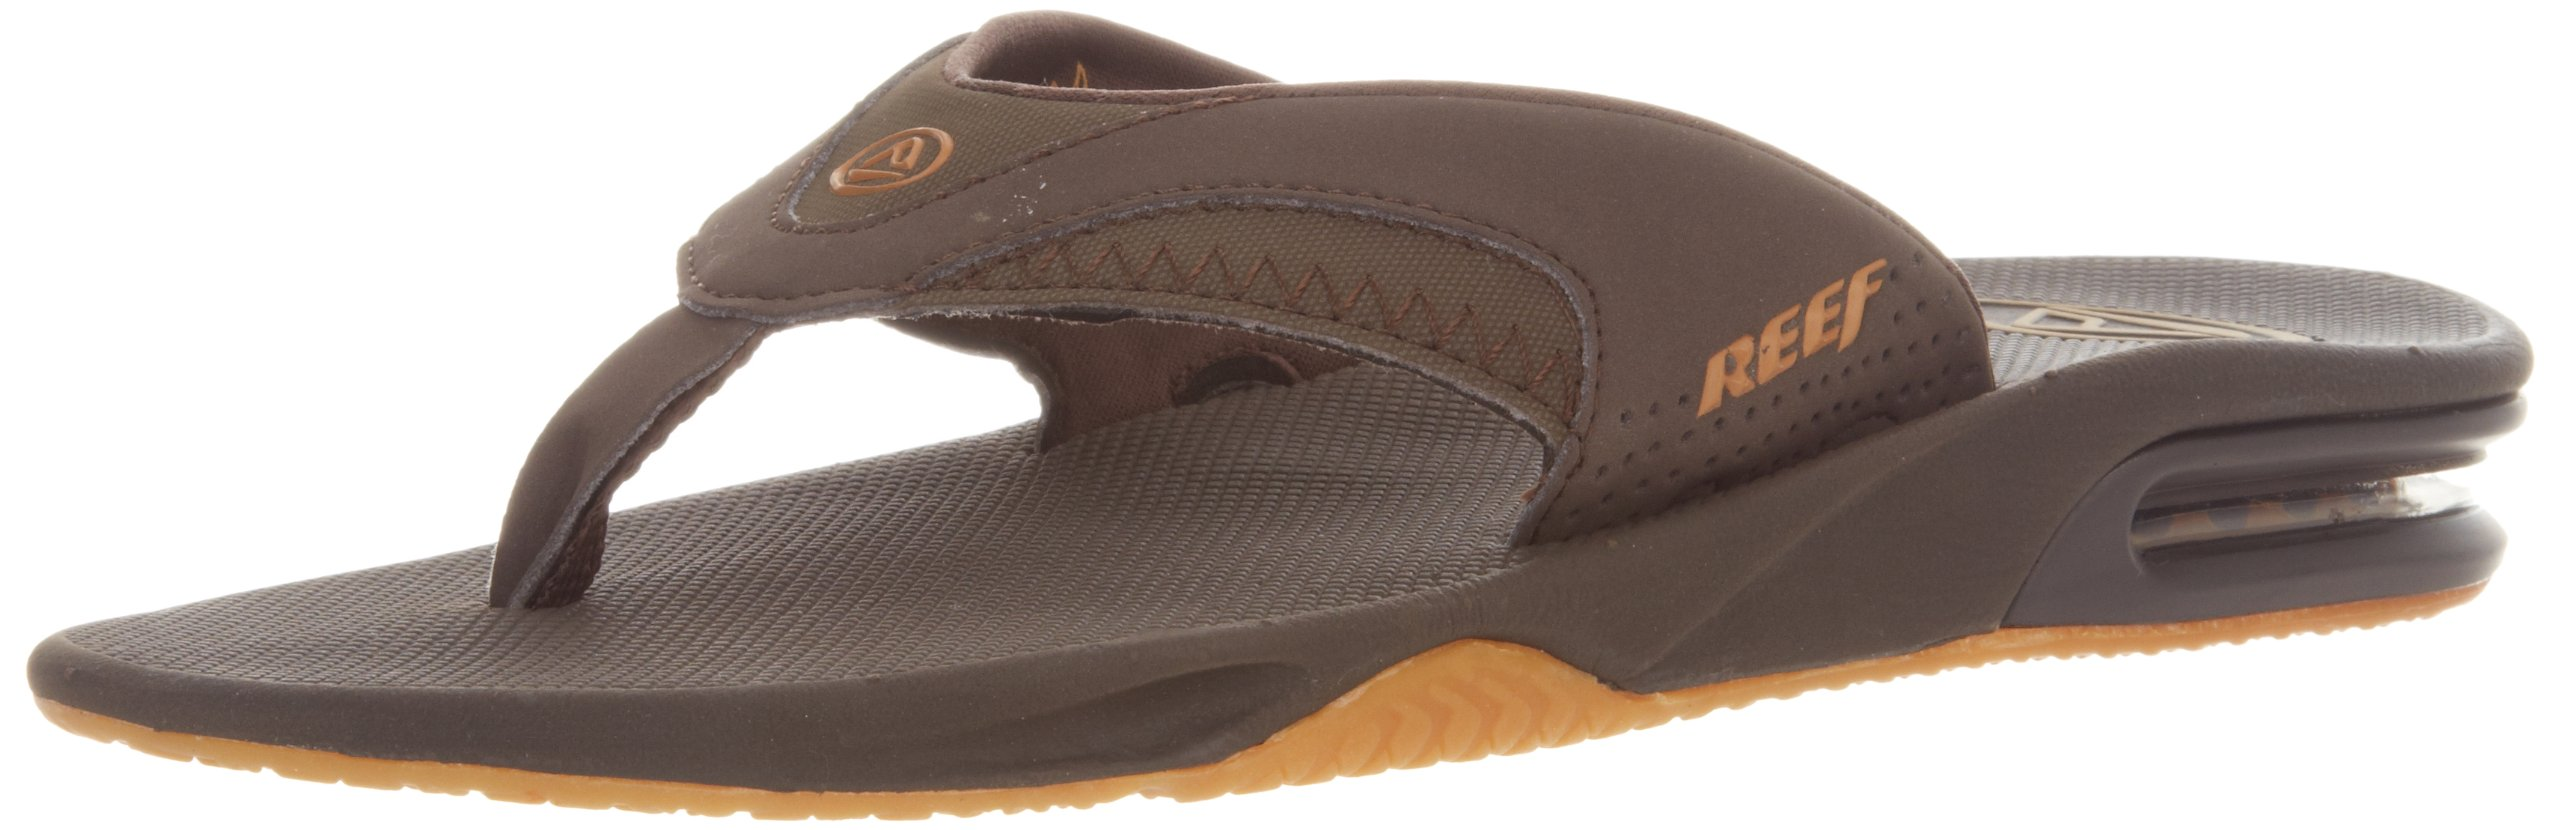 Reef Men's Fanning Bottle Opener Sandals, Brown/Gum, 14